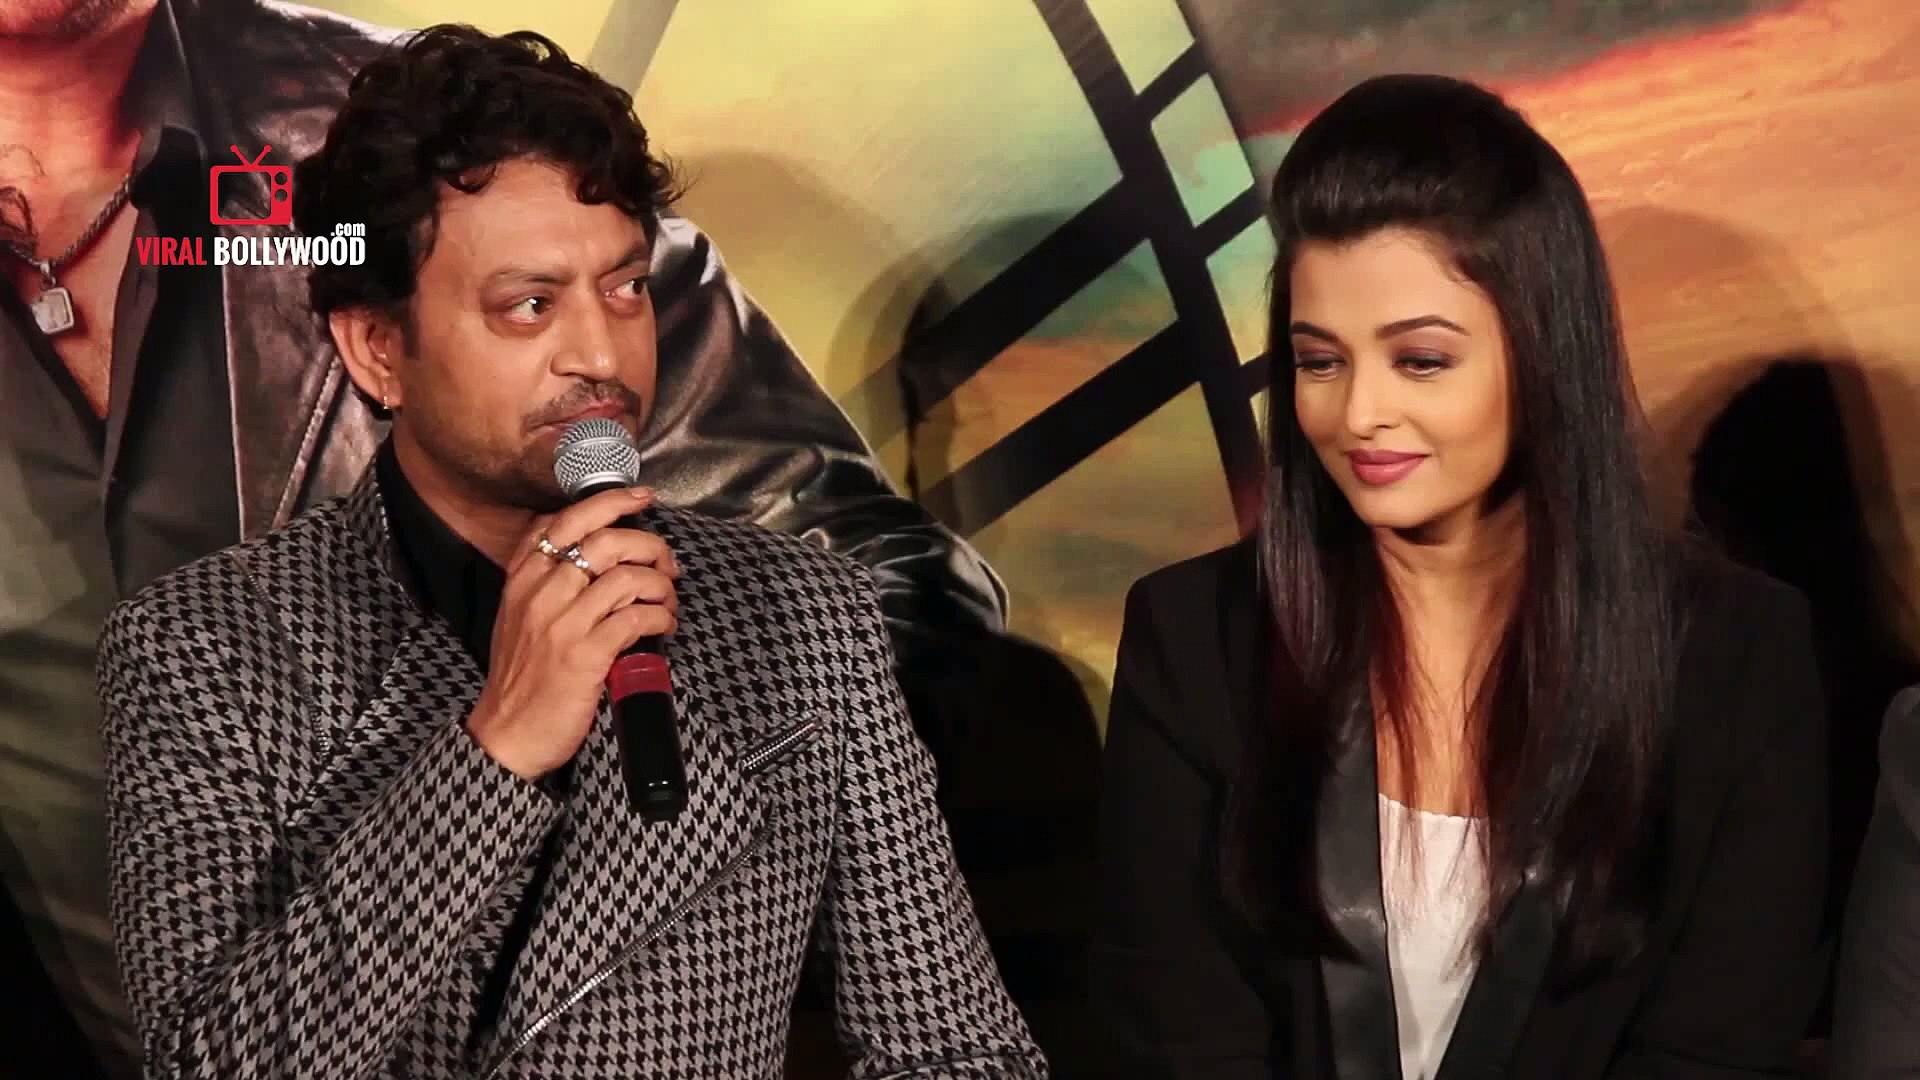 Irrfan Khan shayari from Jazbaa Movie _ Must Listen